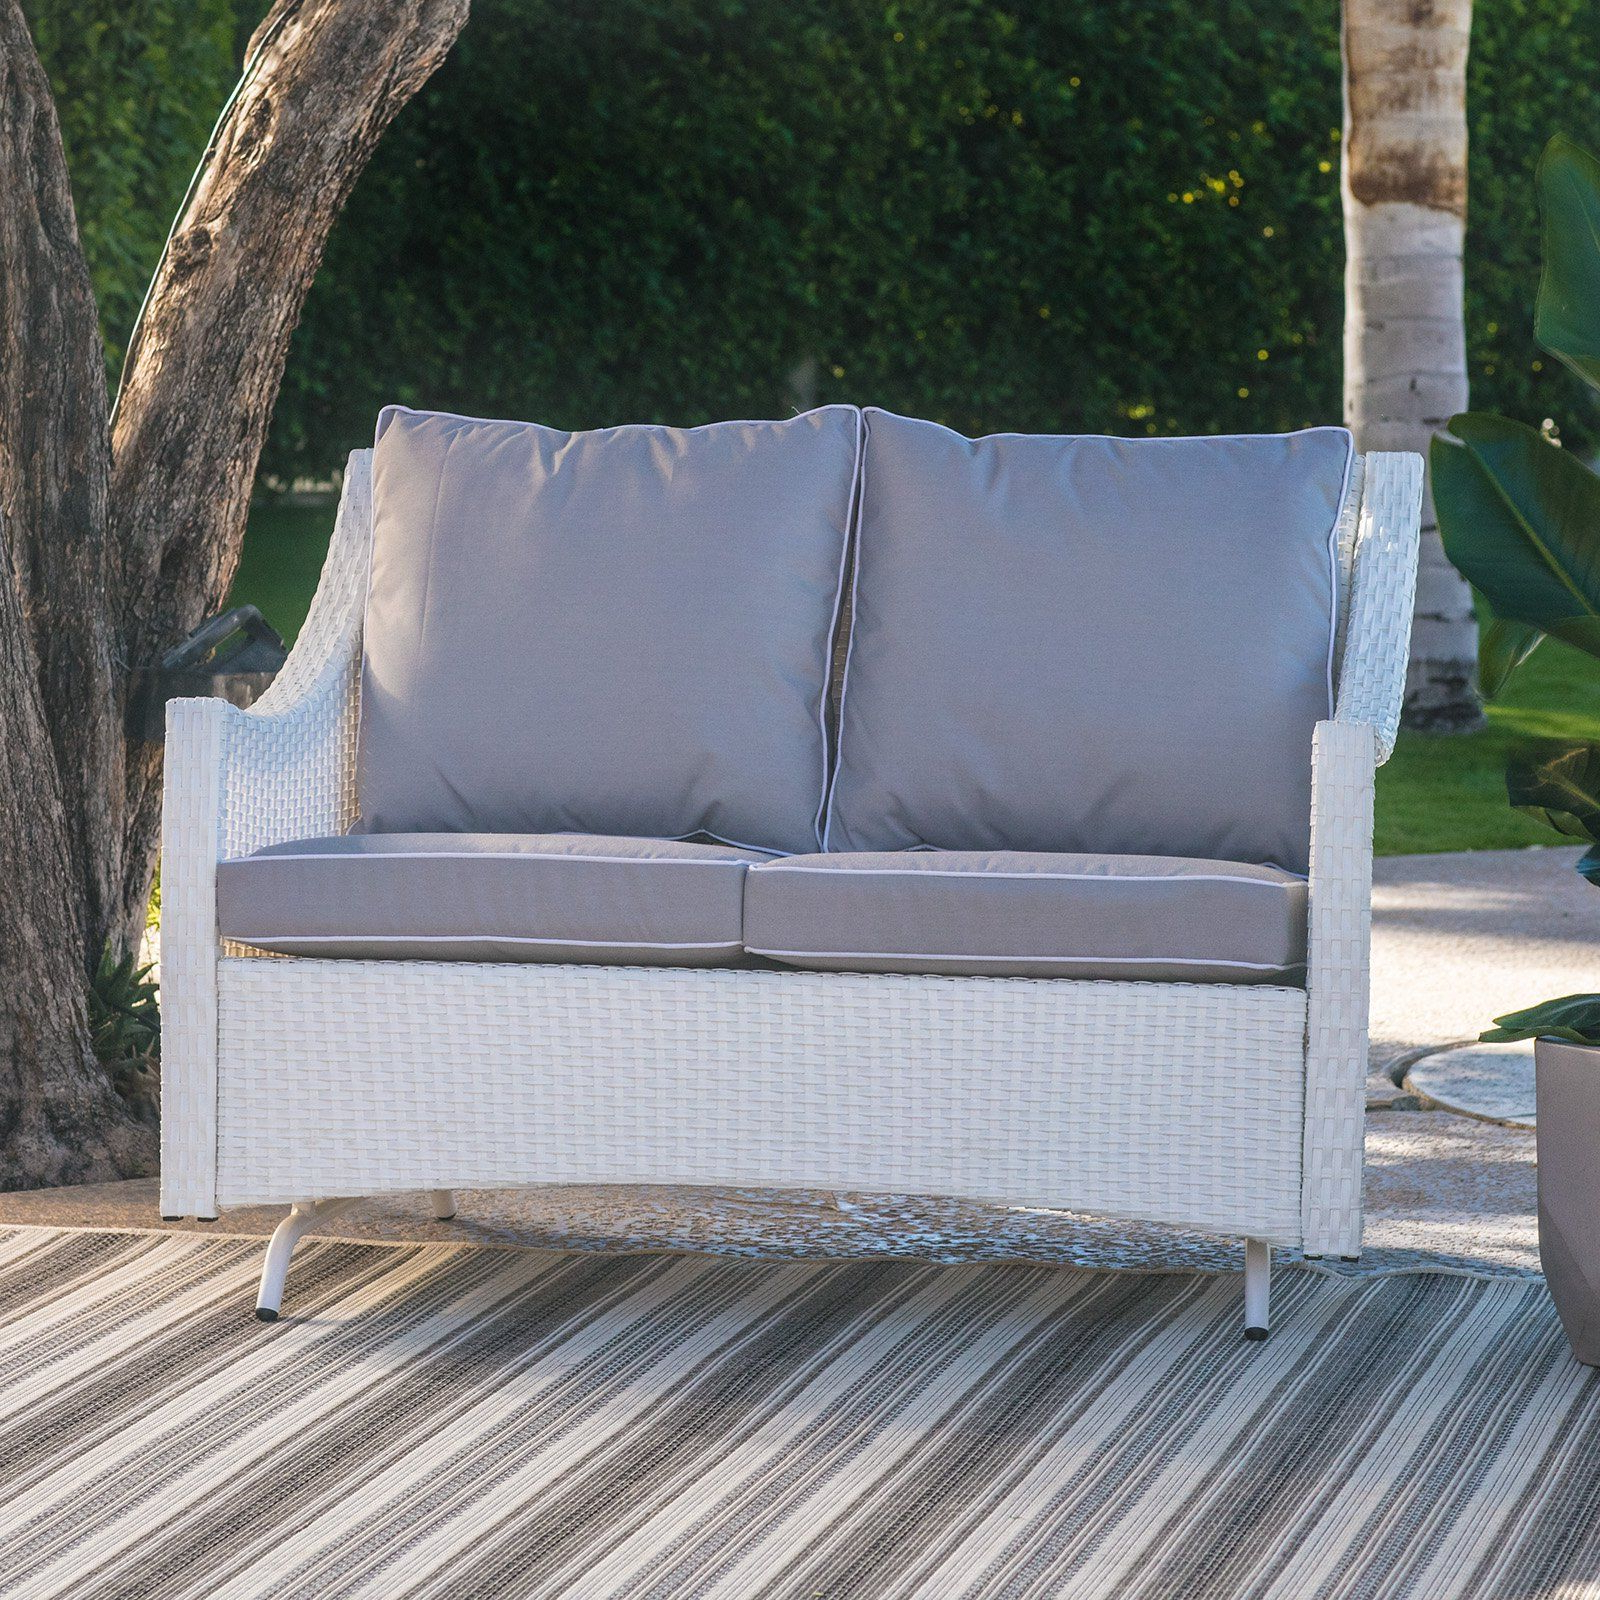 Trendy Outdoor Loveseat Gliders With Cushion With Regard To Belham Living Lindau All Weather Wicker Patio Loveseat (View 8 of 25)